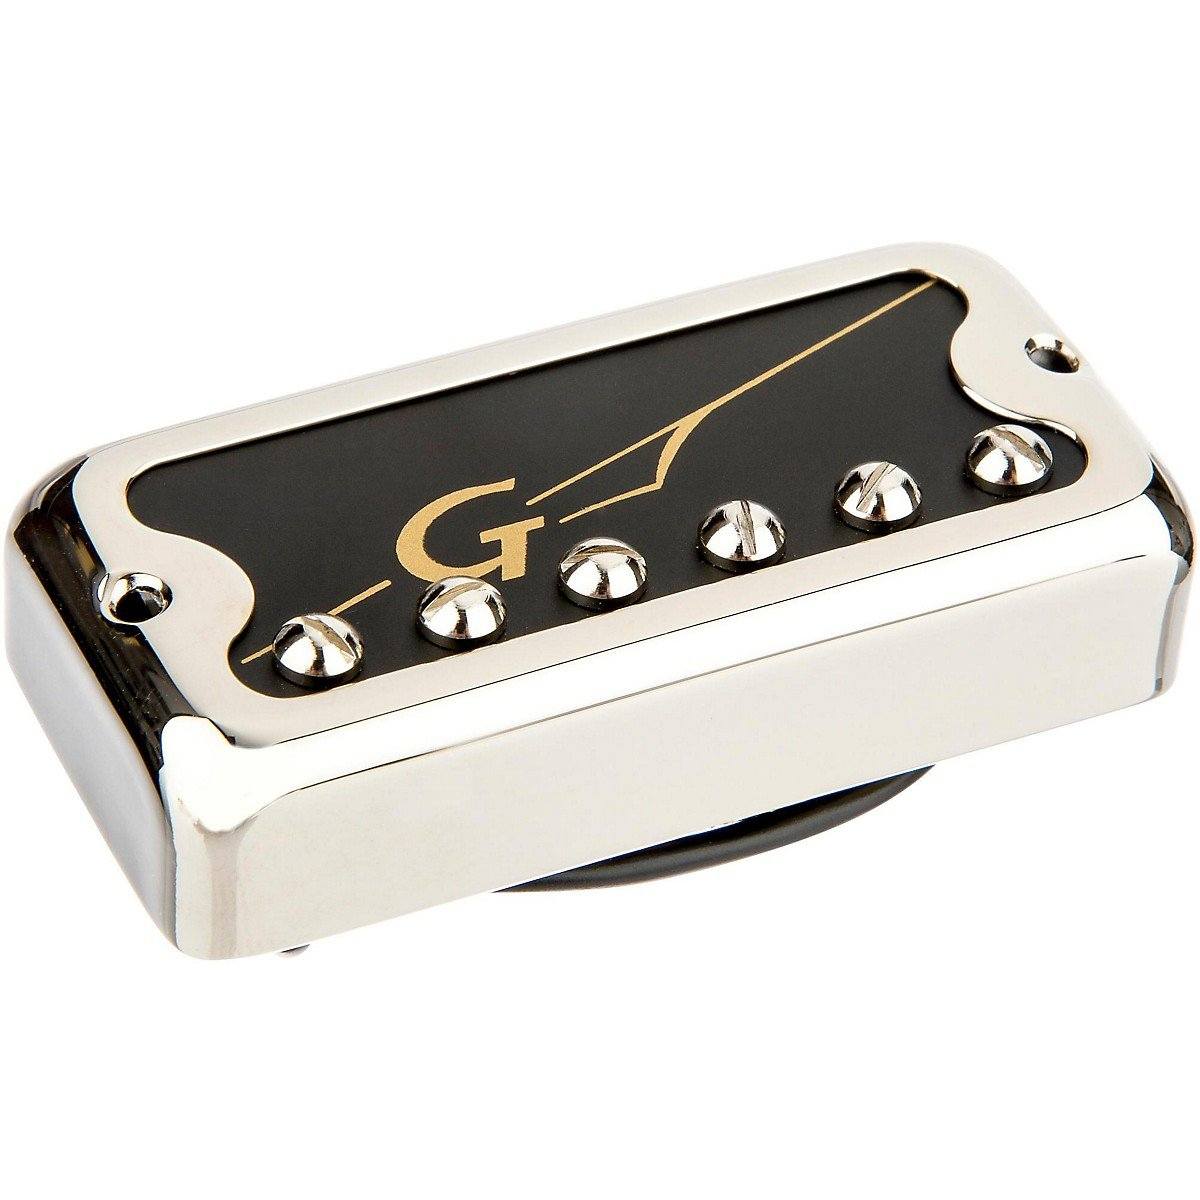 Wiring Diagrams Telecaster Electric Guitar moreover Belle Minimix 150 Switch Wiring Diagram besides Dimarzio B Pickup Wiring Diagram moreover Dimarzio Model One Wiring Diagram likewise Fender P Bass Wiring Diagram. on dimarzio jazz b wiring schematic